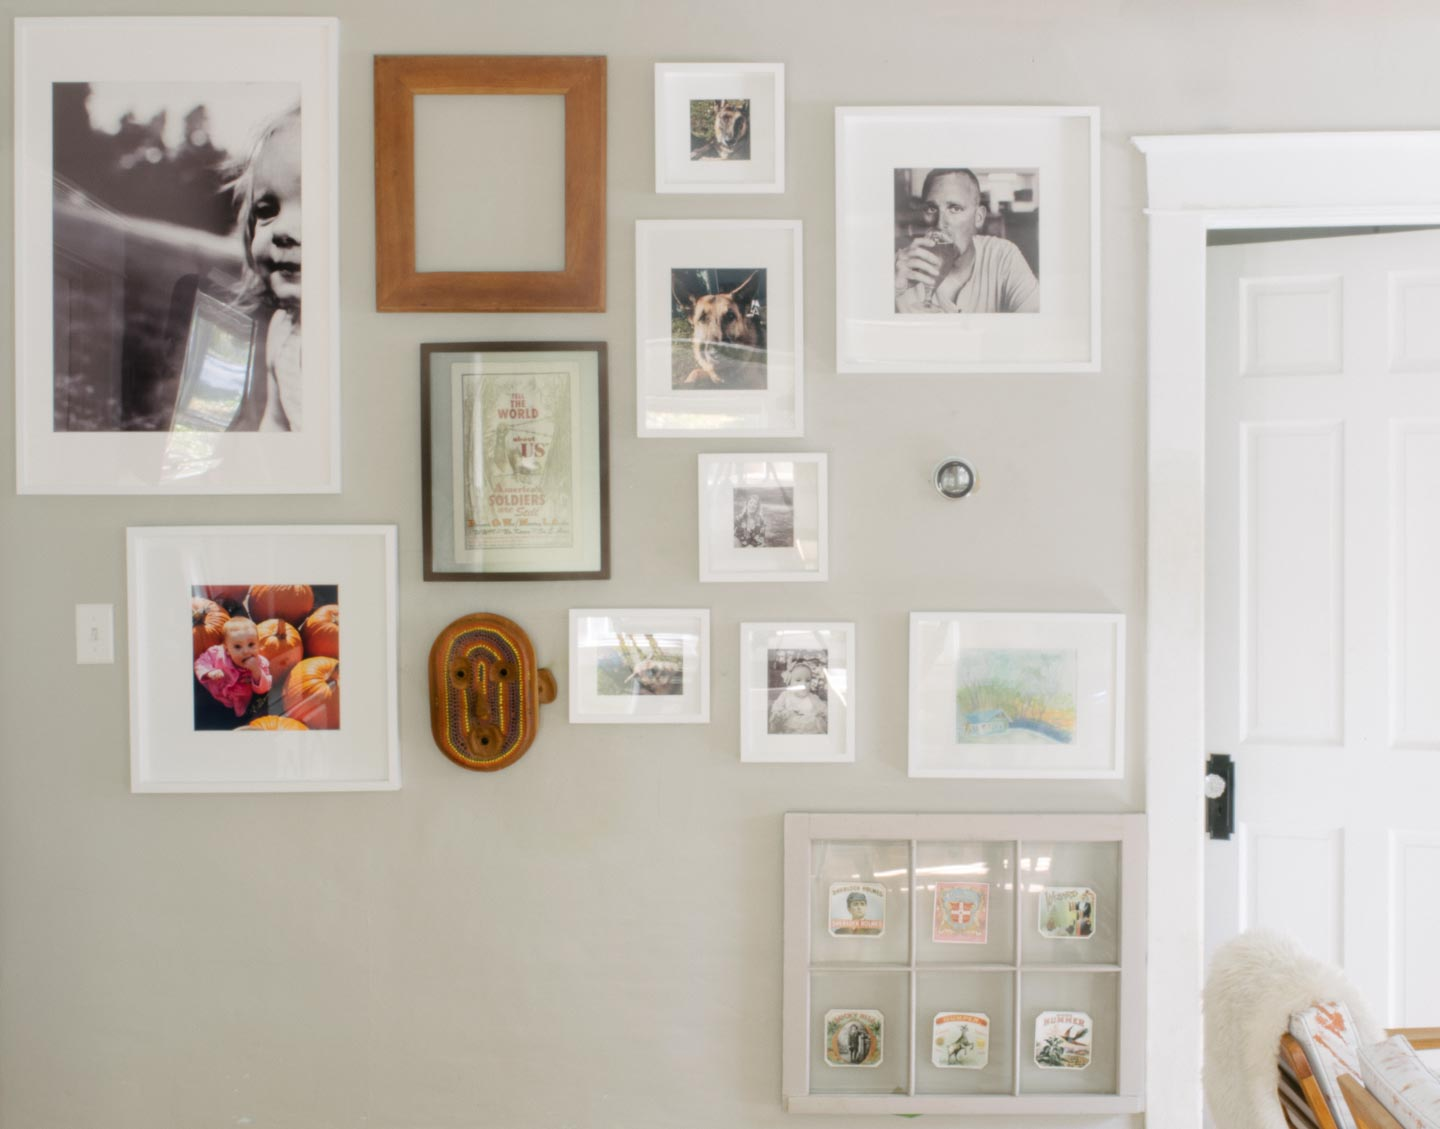 Fall Gallery Wall with new Pictures